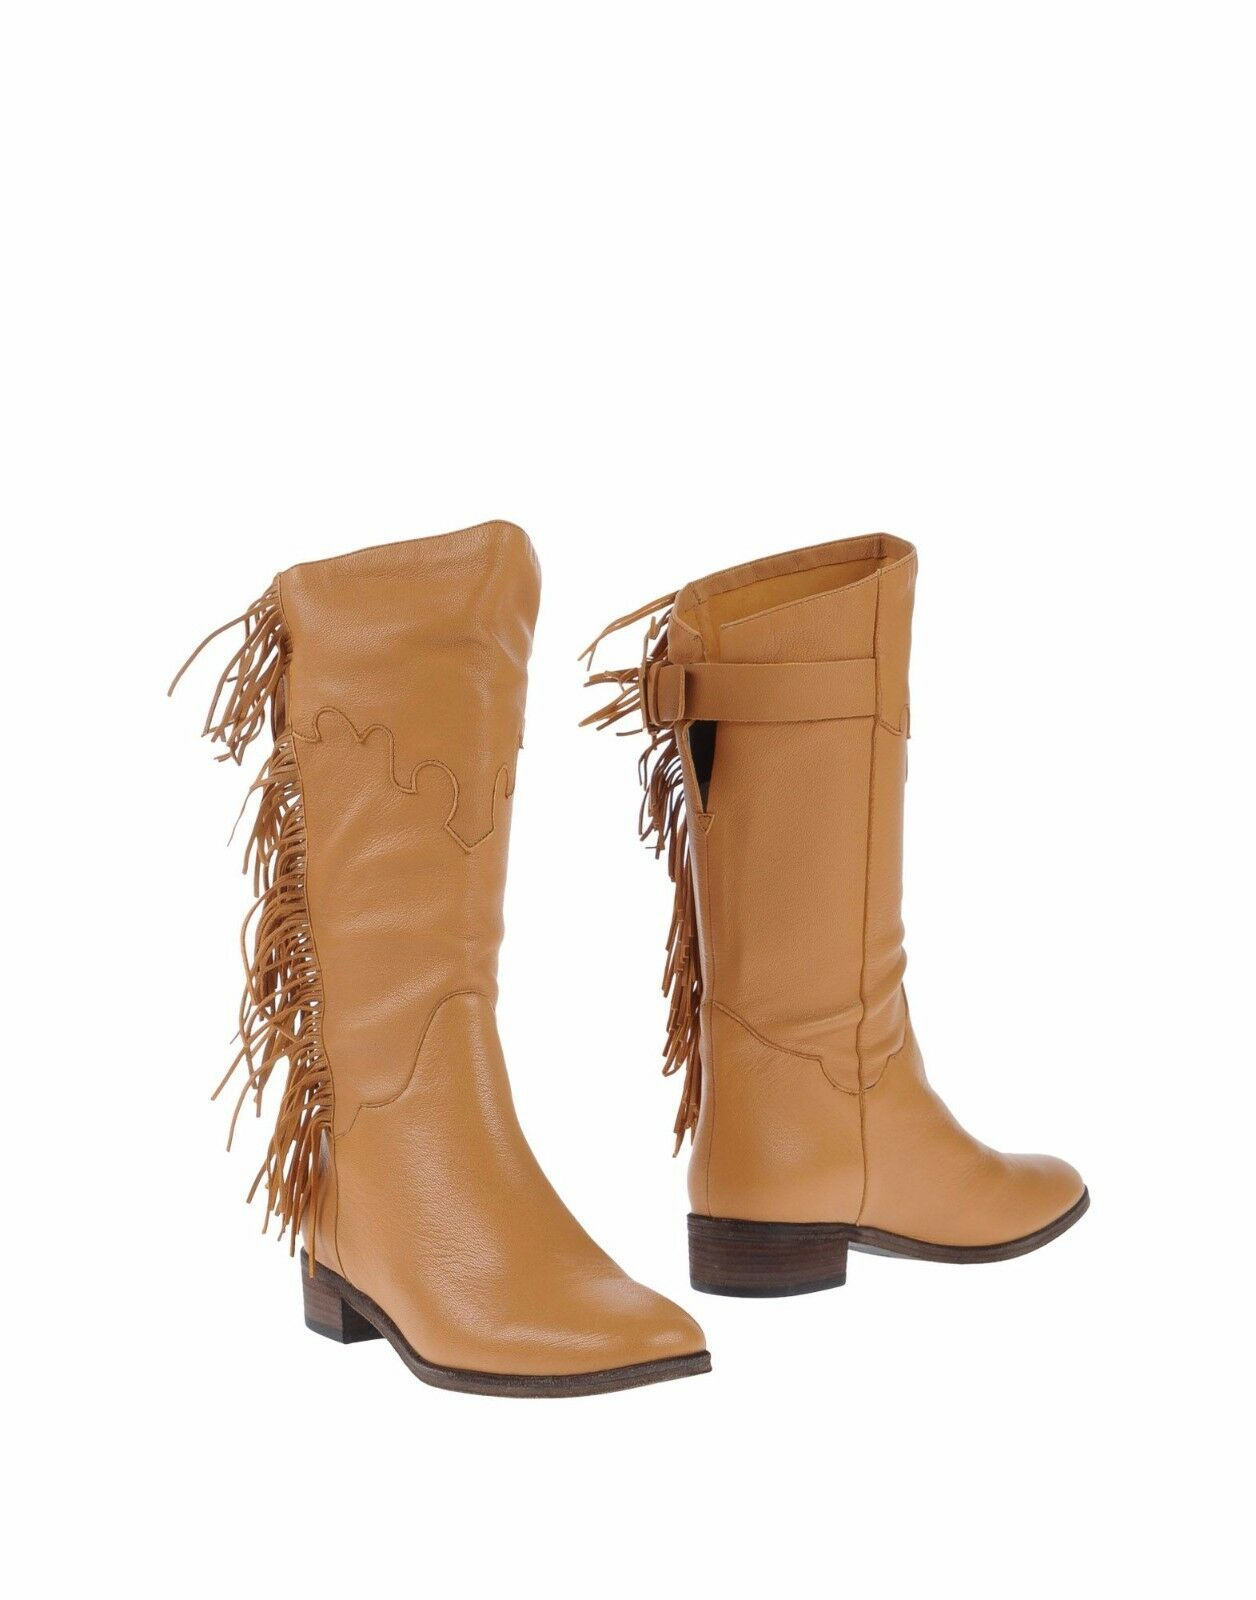 NEW SEE BY CHLOE SZ 5.5 FRINGE TAN LEATHER BOOT HEEL BISCOTTI  RET 520